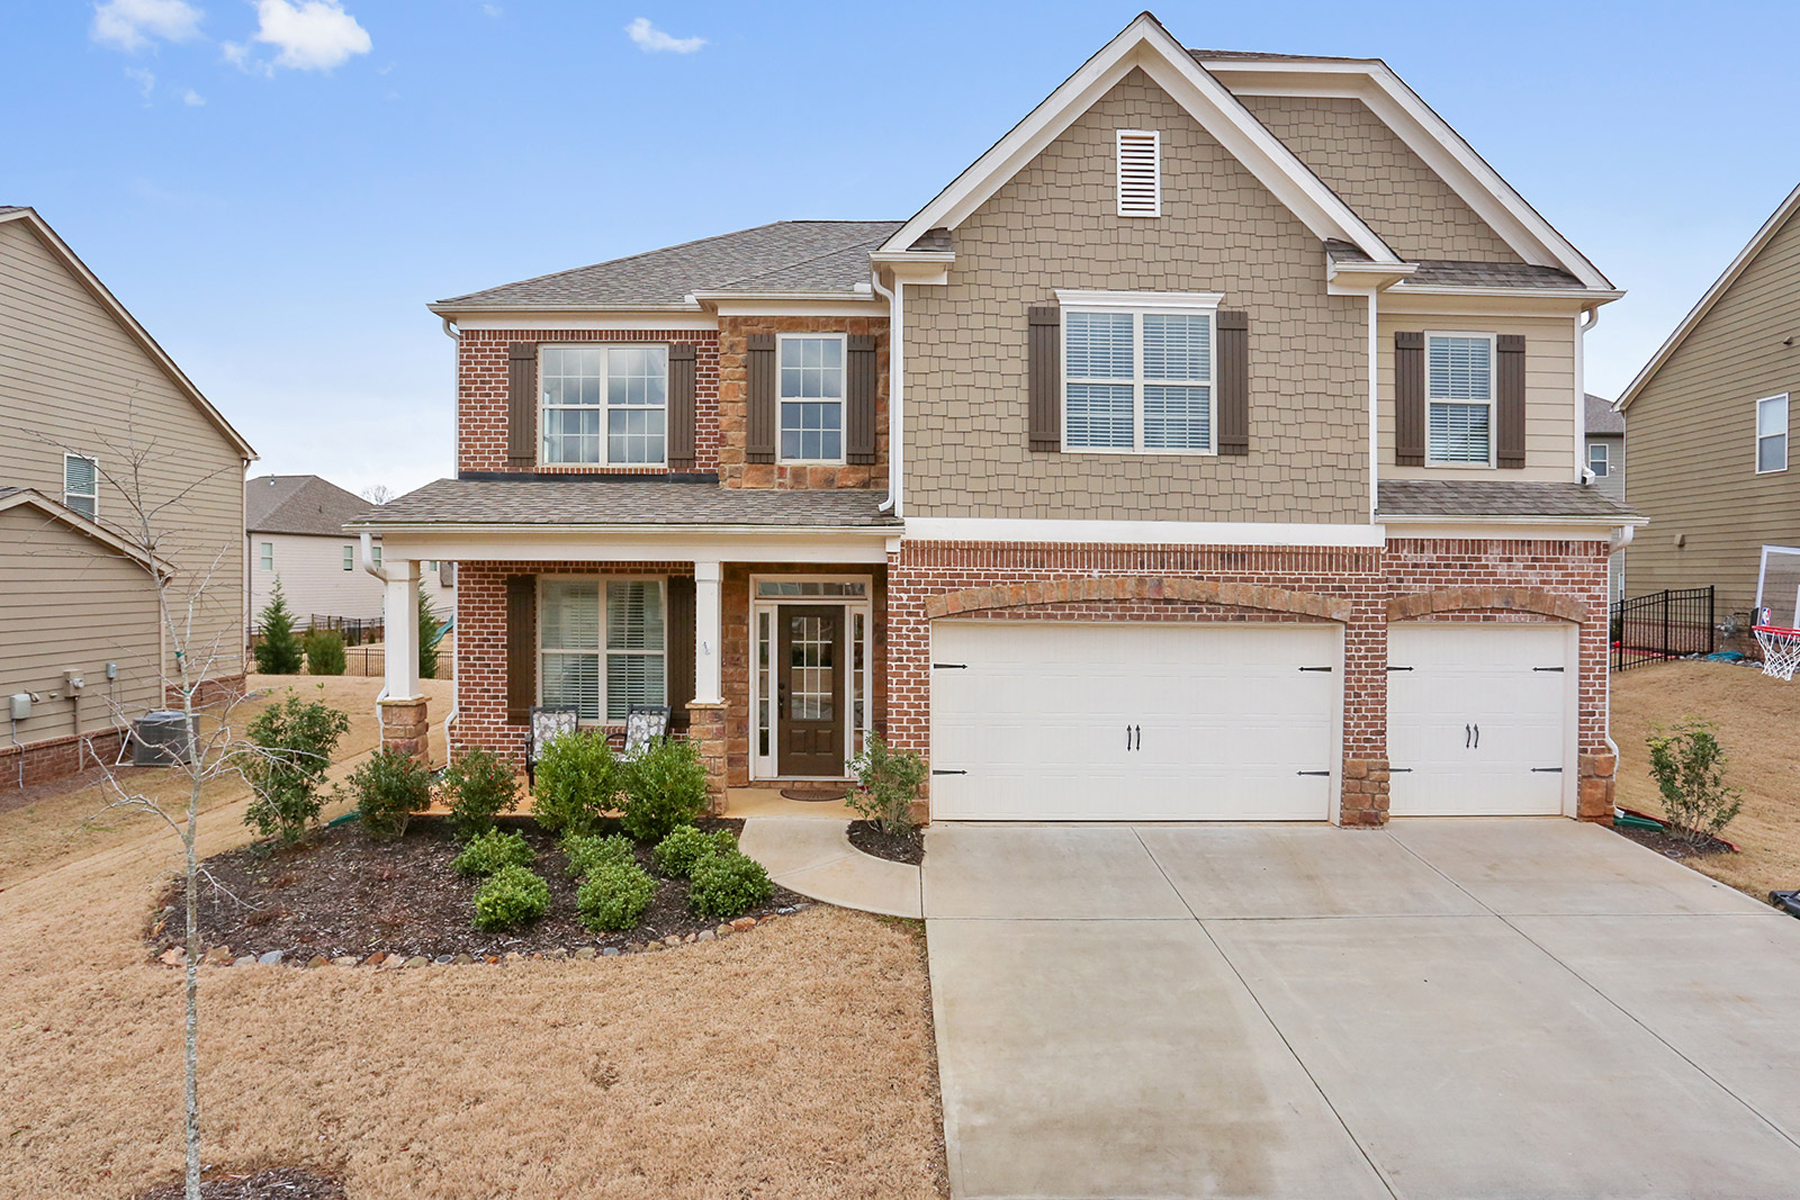 Single Family Home for Sale at Spacious Open Concept Home In West Forsyth 7410 Oldbury Place Cumming, Georgia 30040 United States